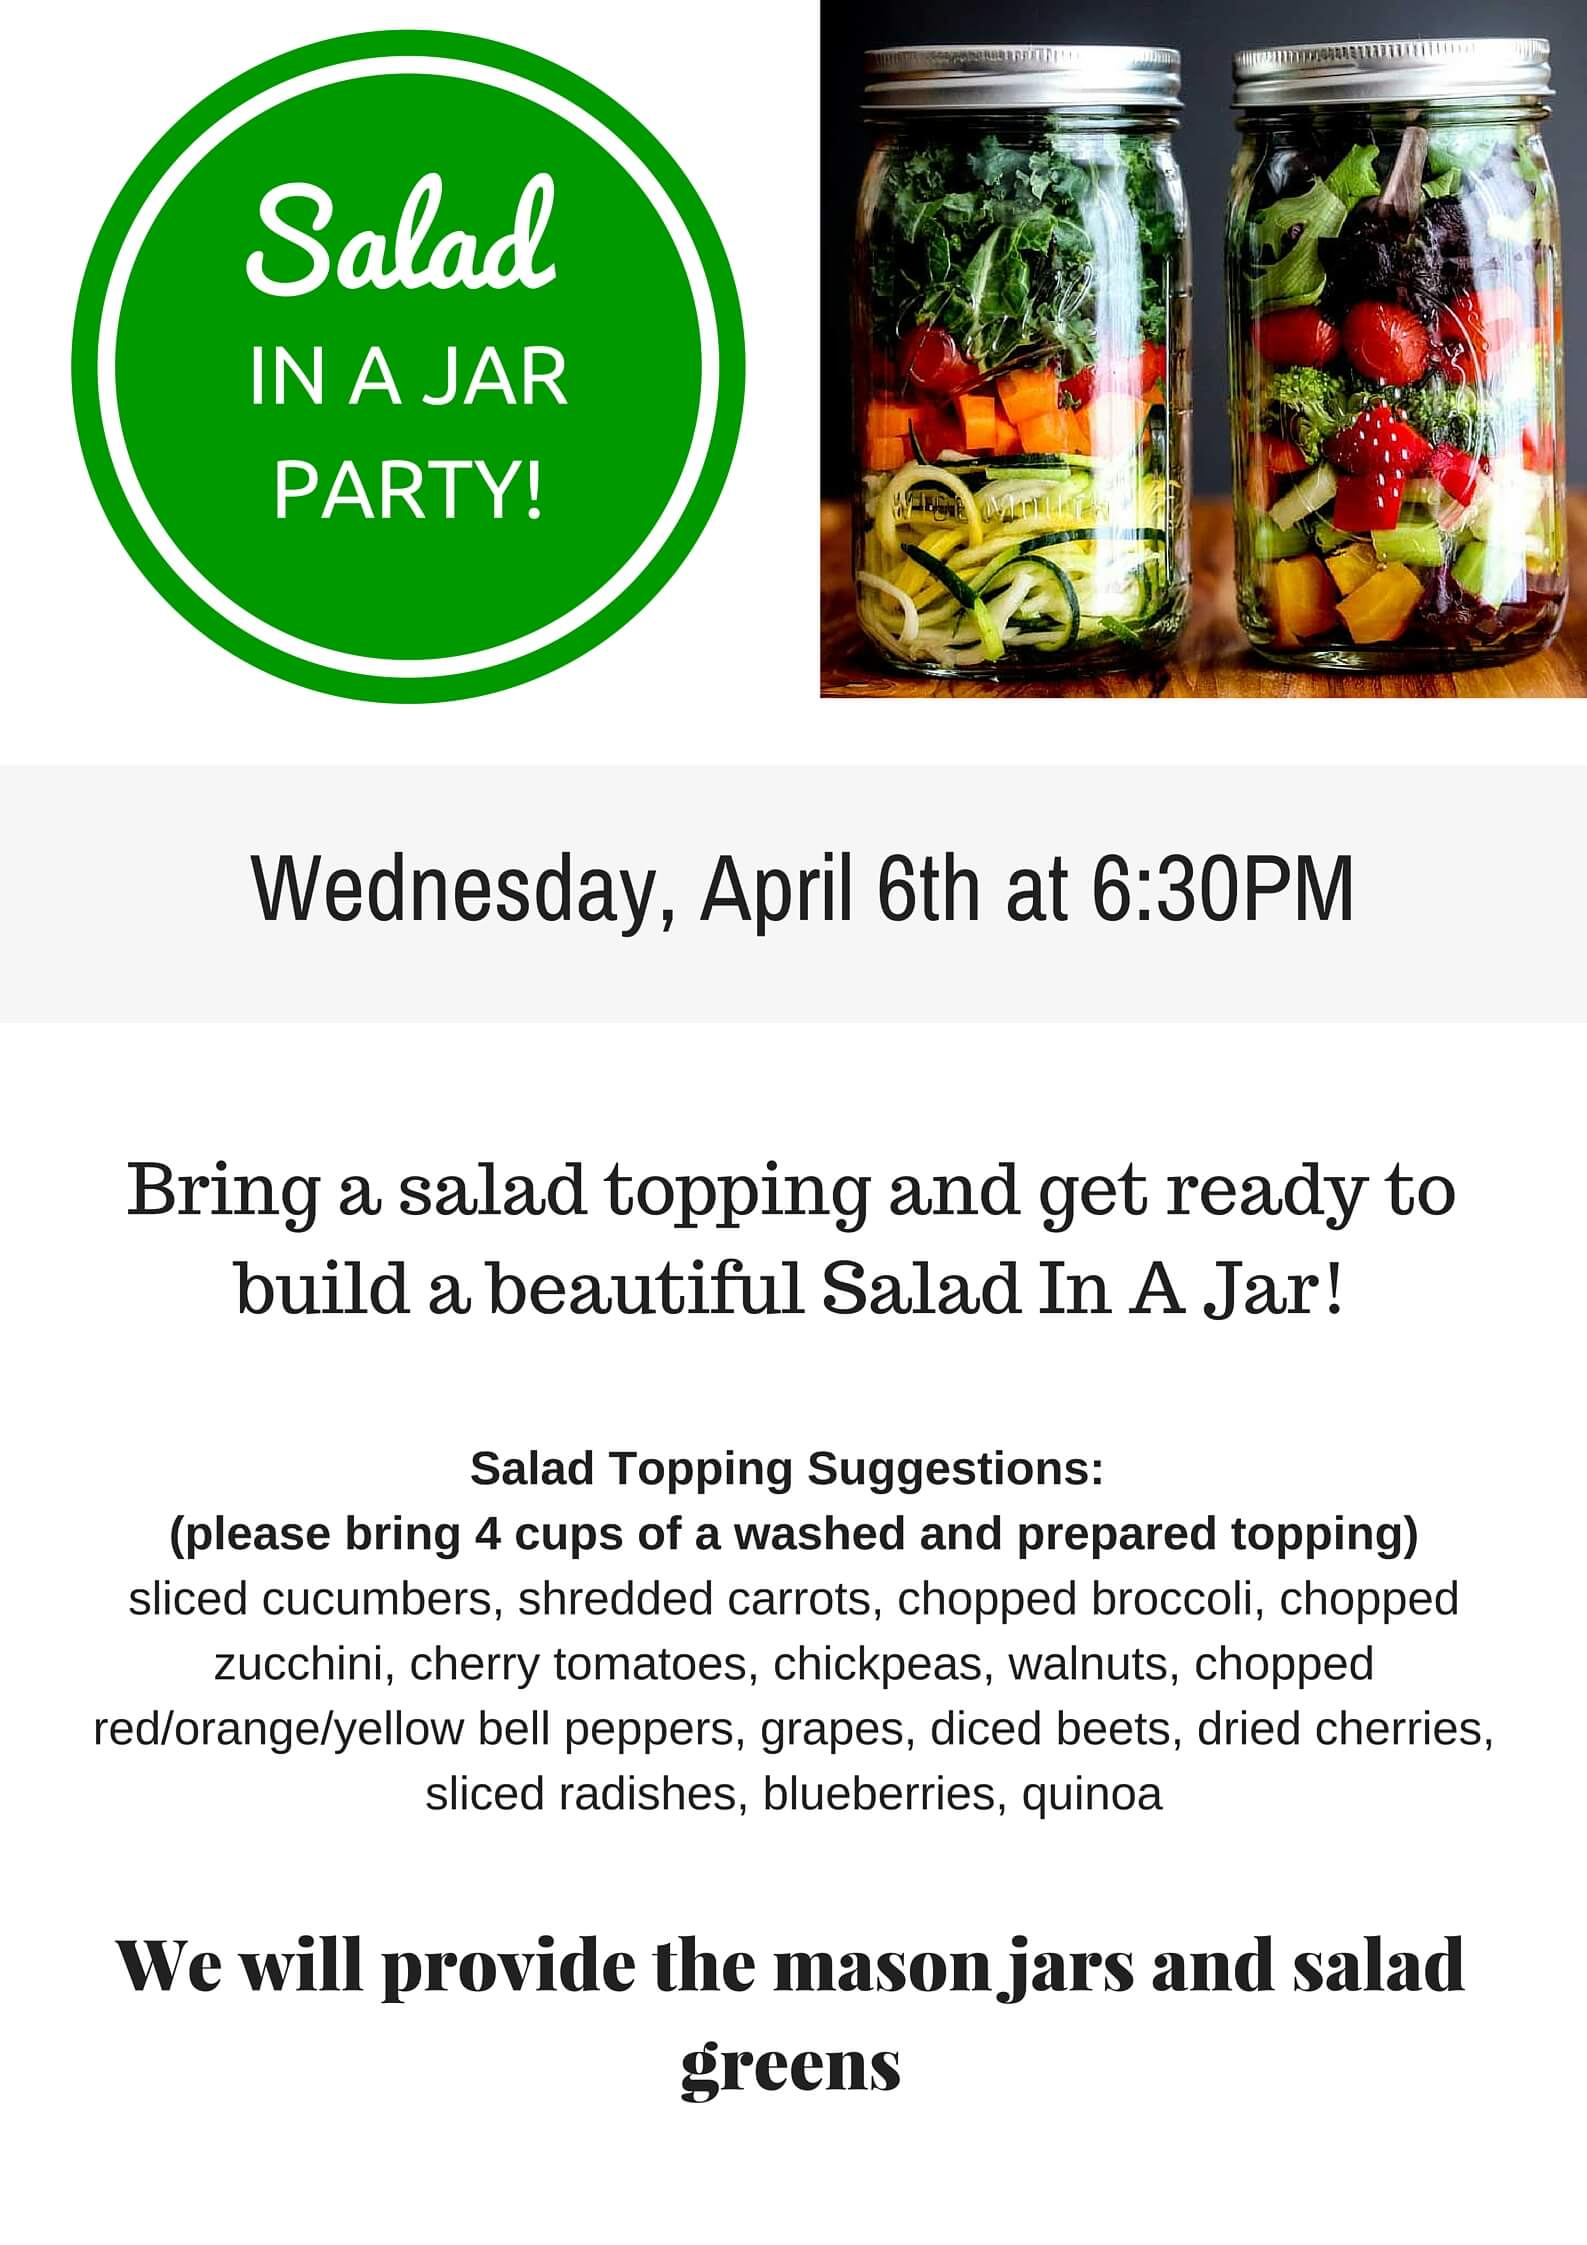 How To Host A Salad In A Jar Party - Get all the instructions you need to plan this fun group activity for your next girls night out